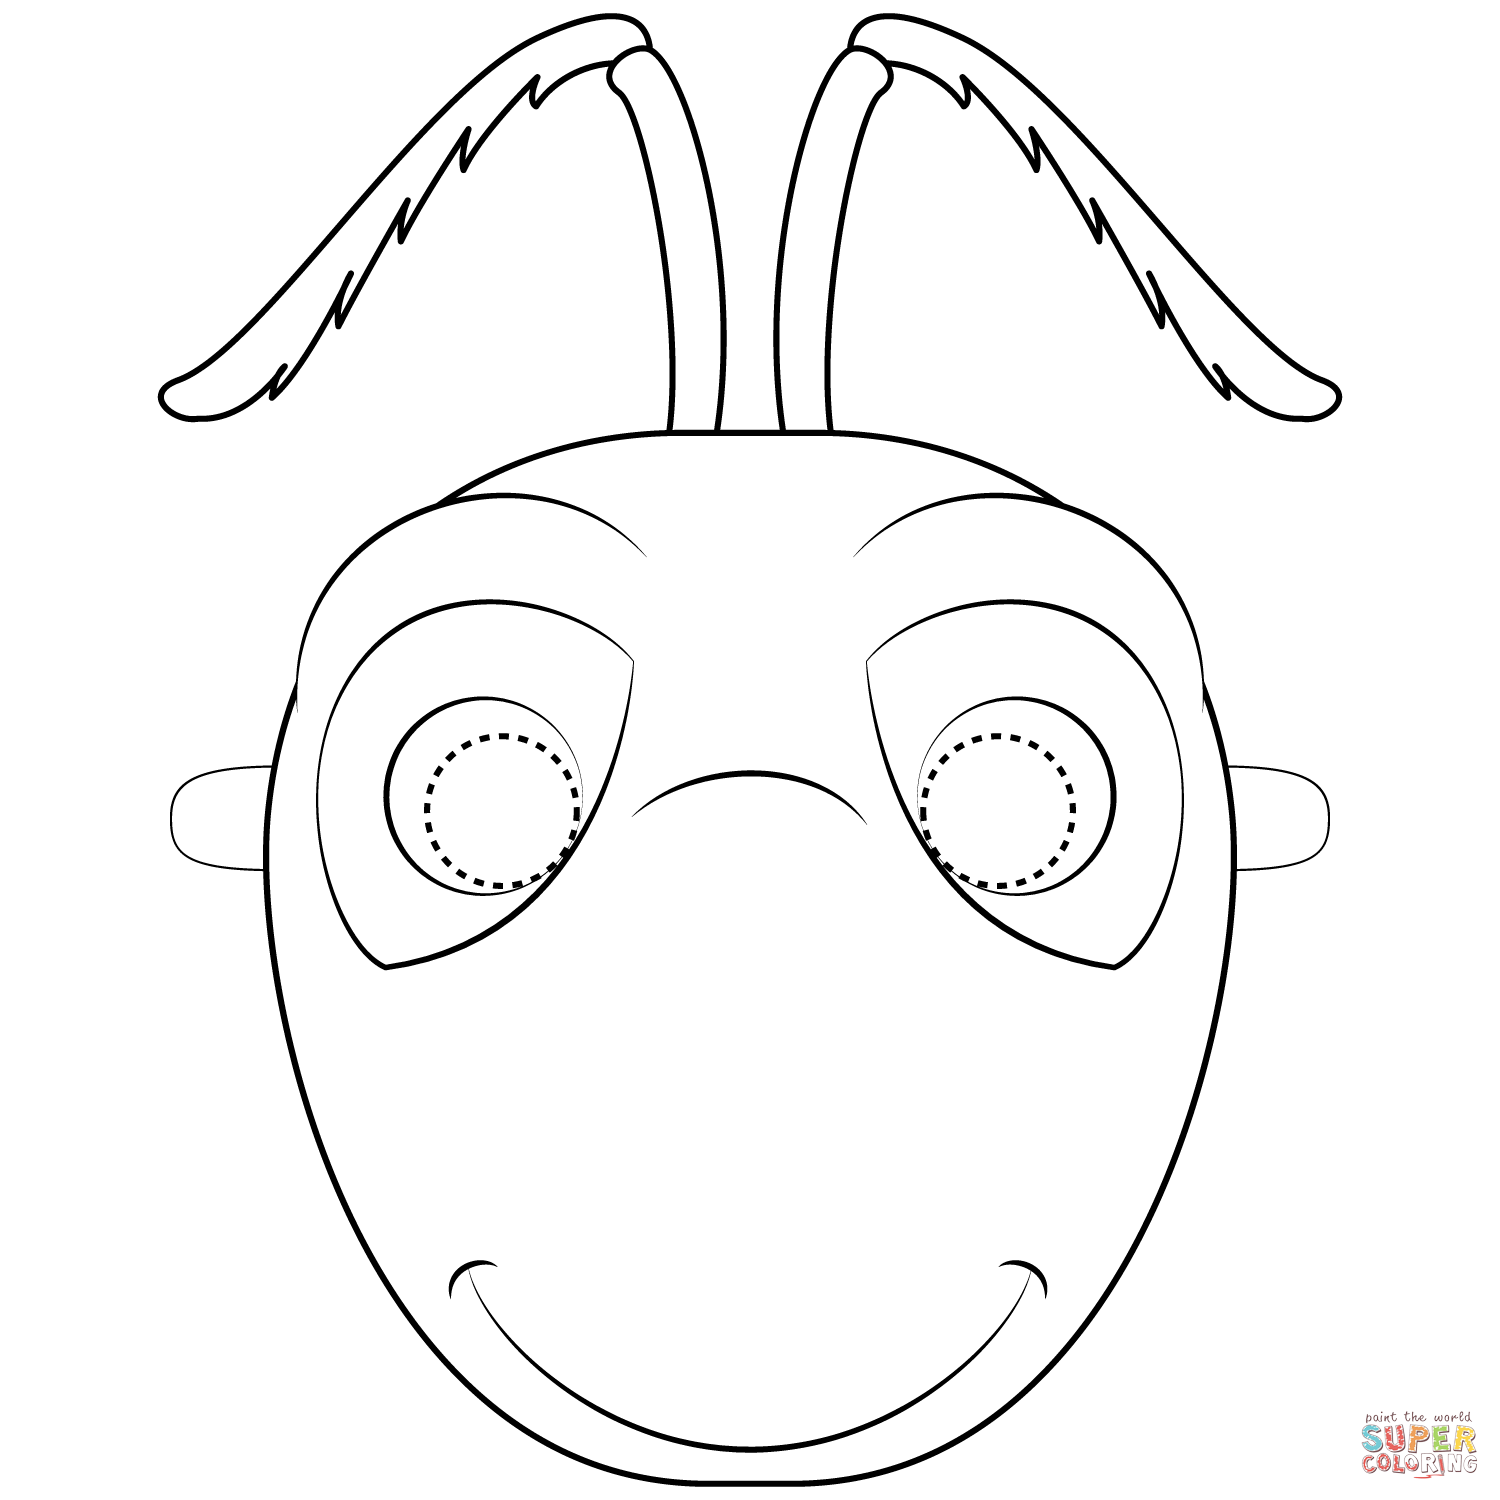 Ant mask clipart vector royalty free Ant Mask coloring page | Free Printable Coloring Pages vector royalty free